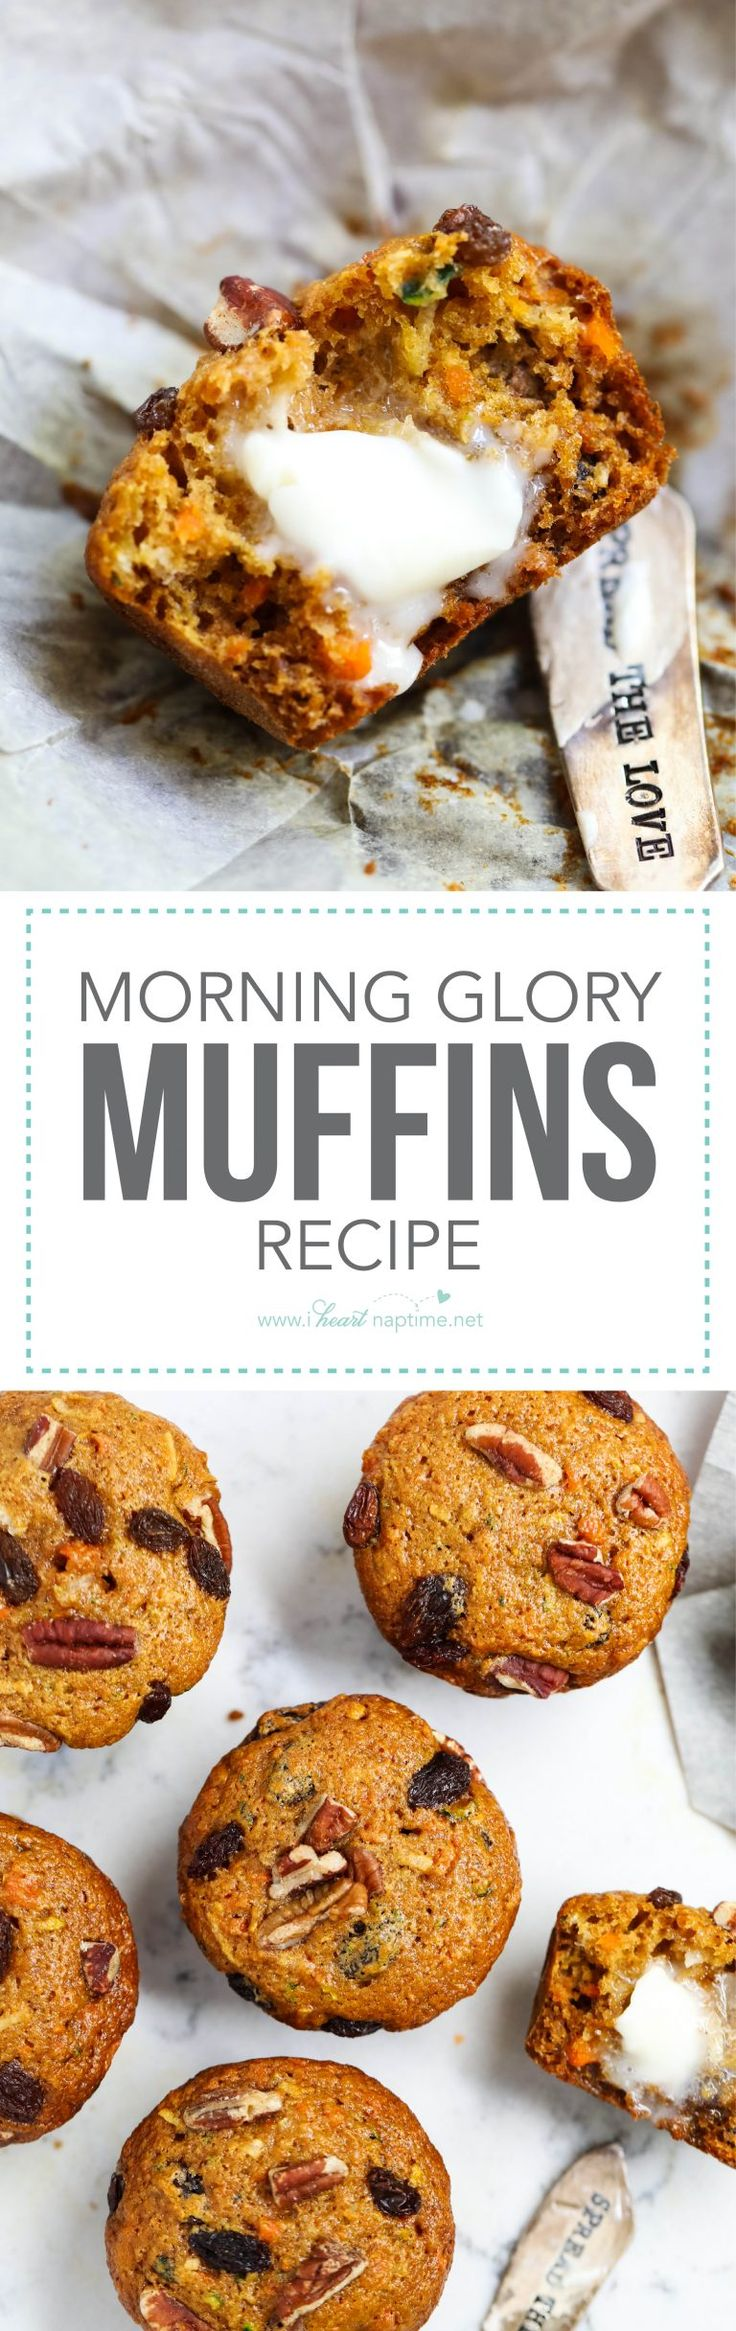 Today I'm sharing my favorite morning glory muffin recipe. These are are hearty, healthy and delicious! They are also packed full of veggies and perfect for freezing.